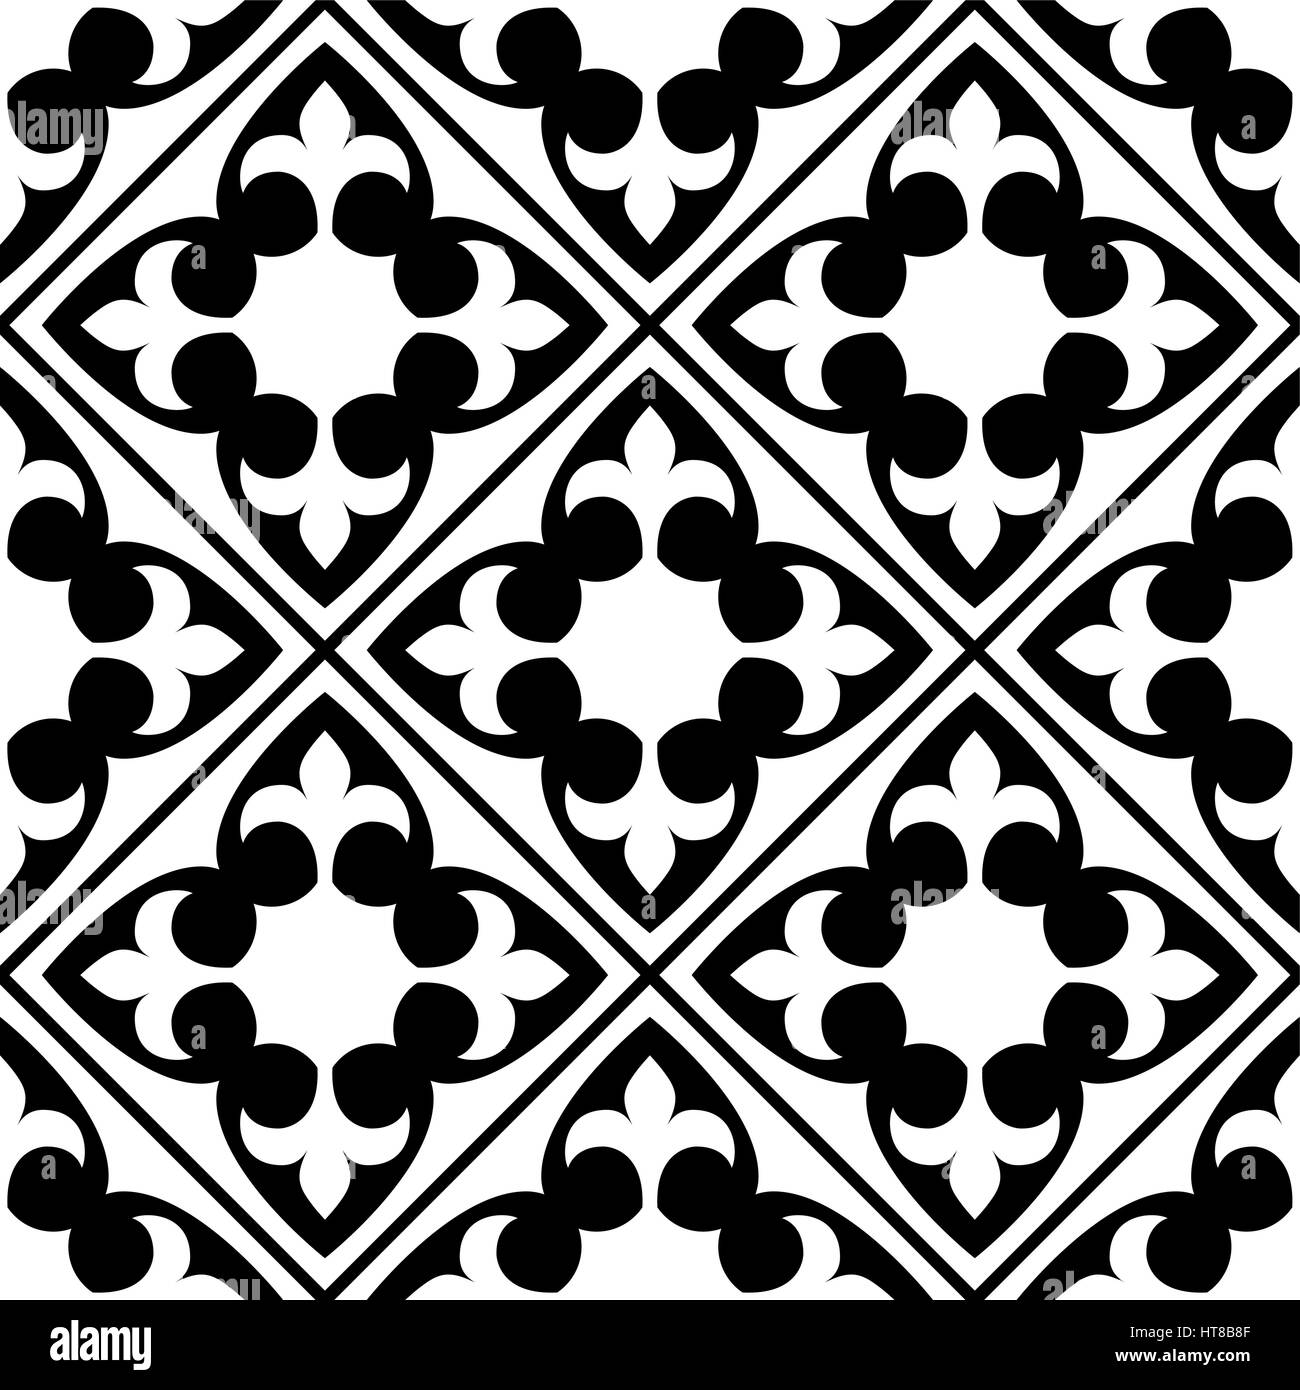 Spanish And Portuguese Tile Pattern Moroccan Tiles Design Seamless Stock Vector Image Art Alamy